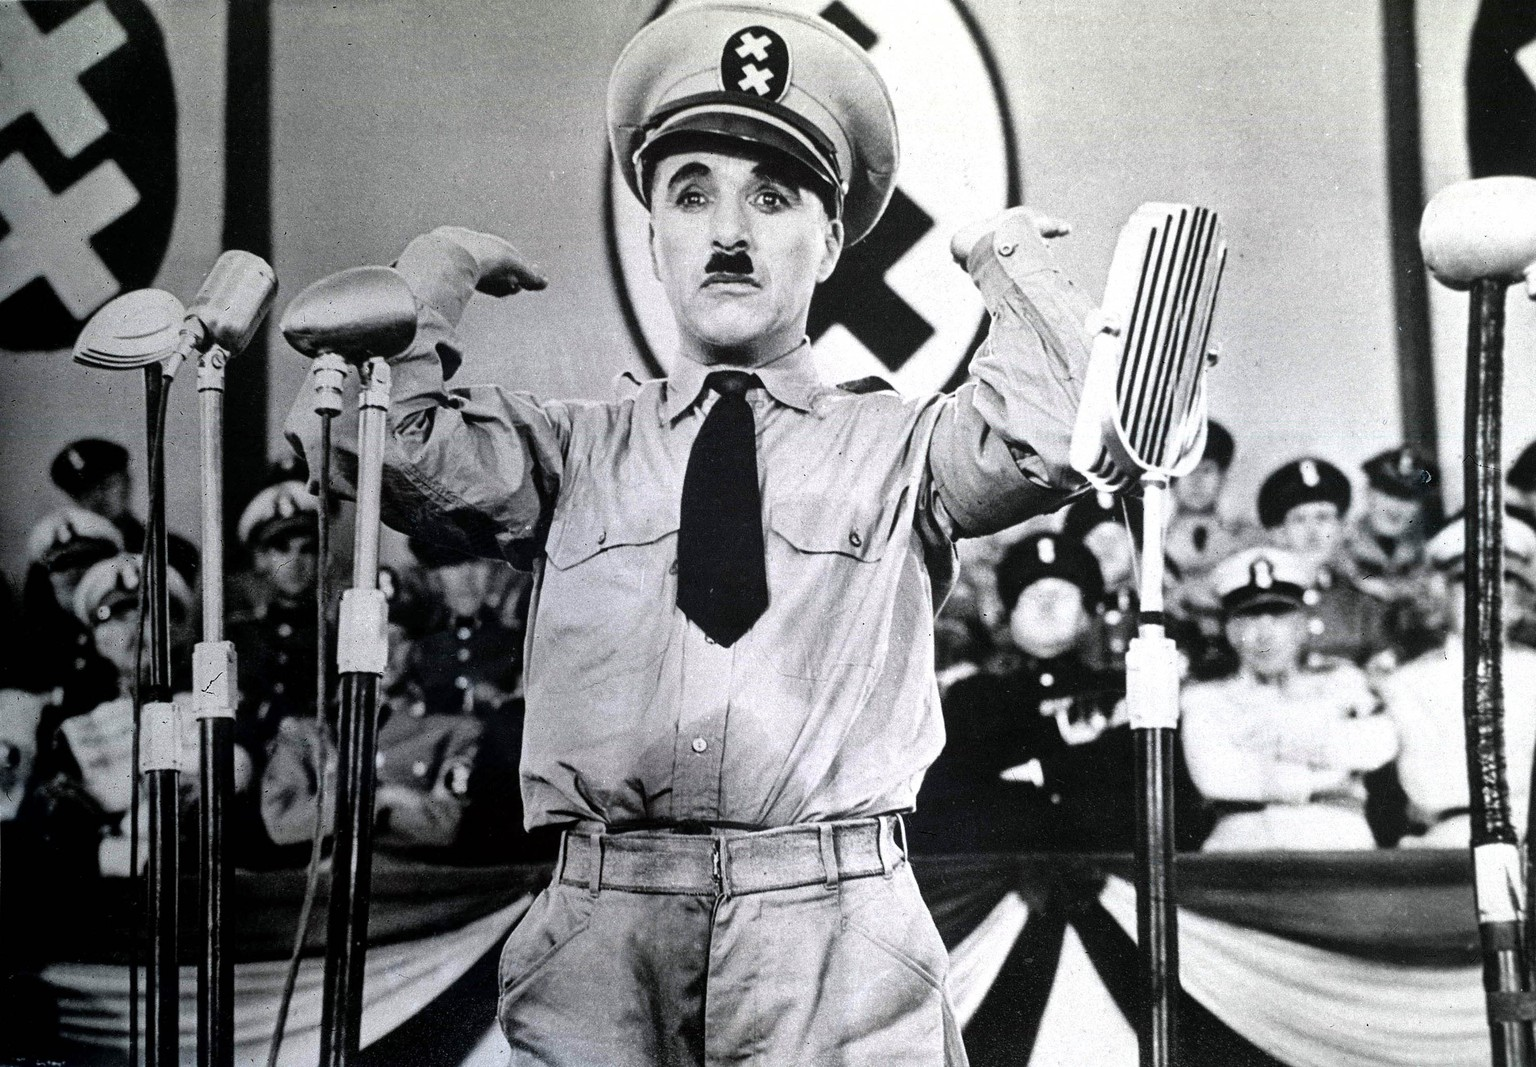 24th August 1940, Charlie Chaplin in a still from his film +The Great Dictator+, a satire of Totalitarian regimes  (Photo by Popperfoto/Getty Images)